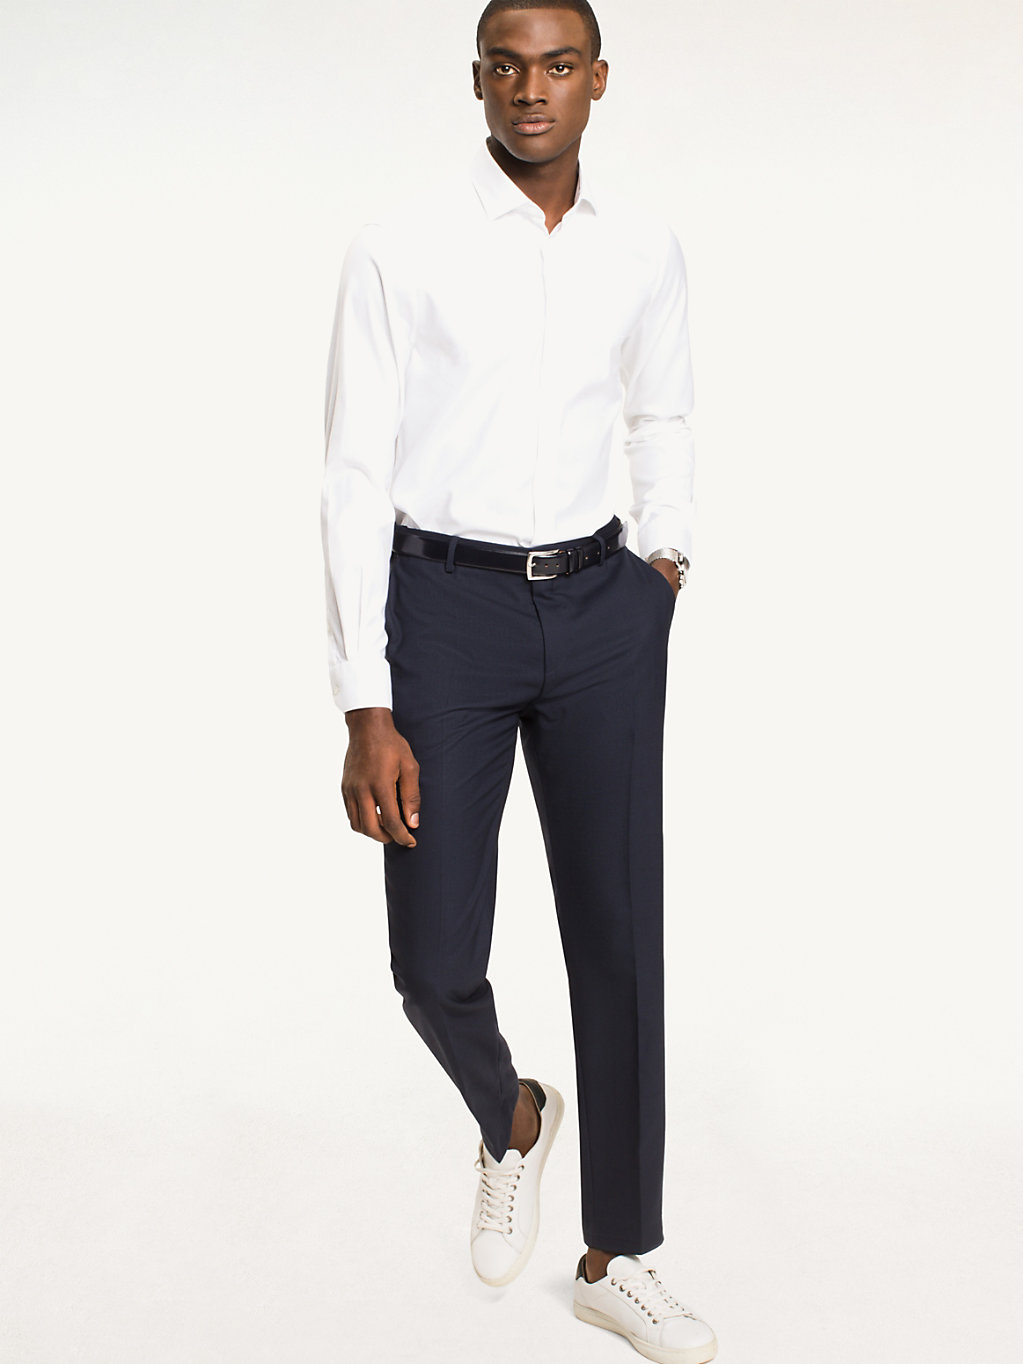 Tommy Hilfiger - Stretch Slim Fit Shirt - 2